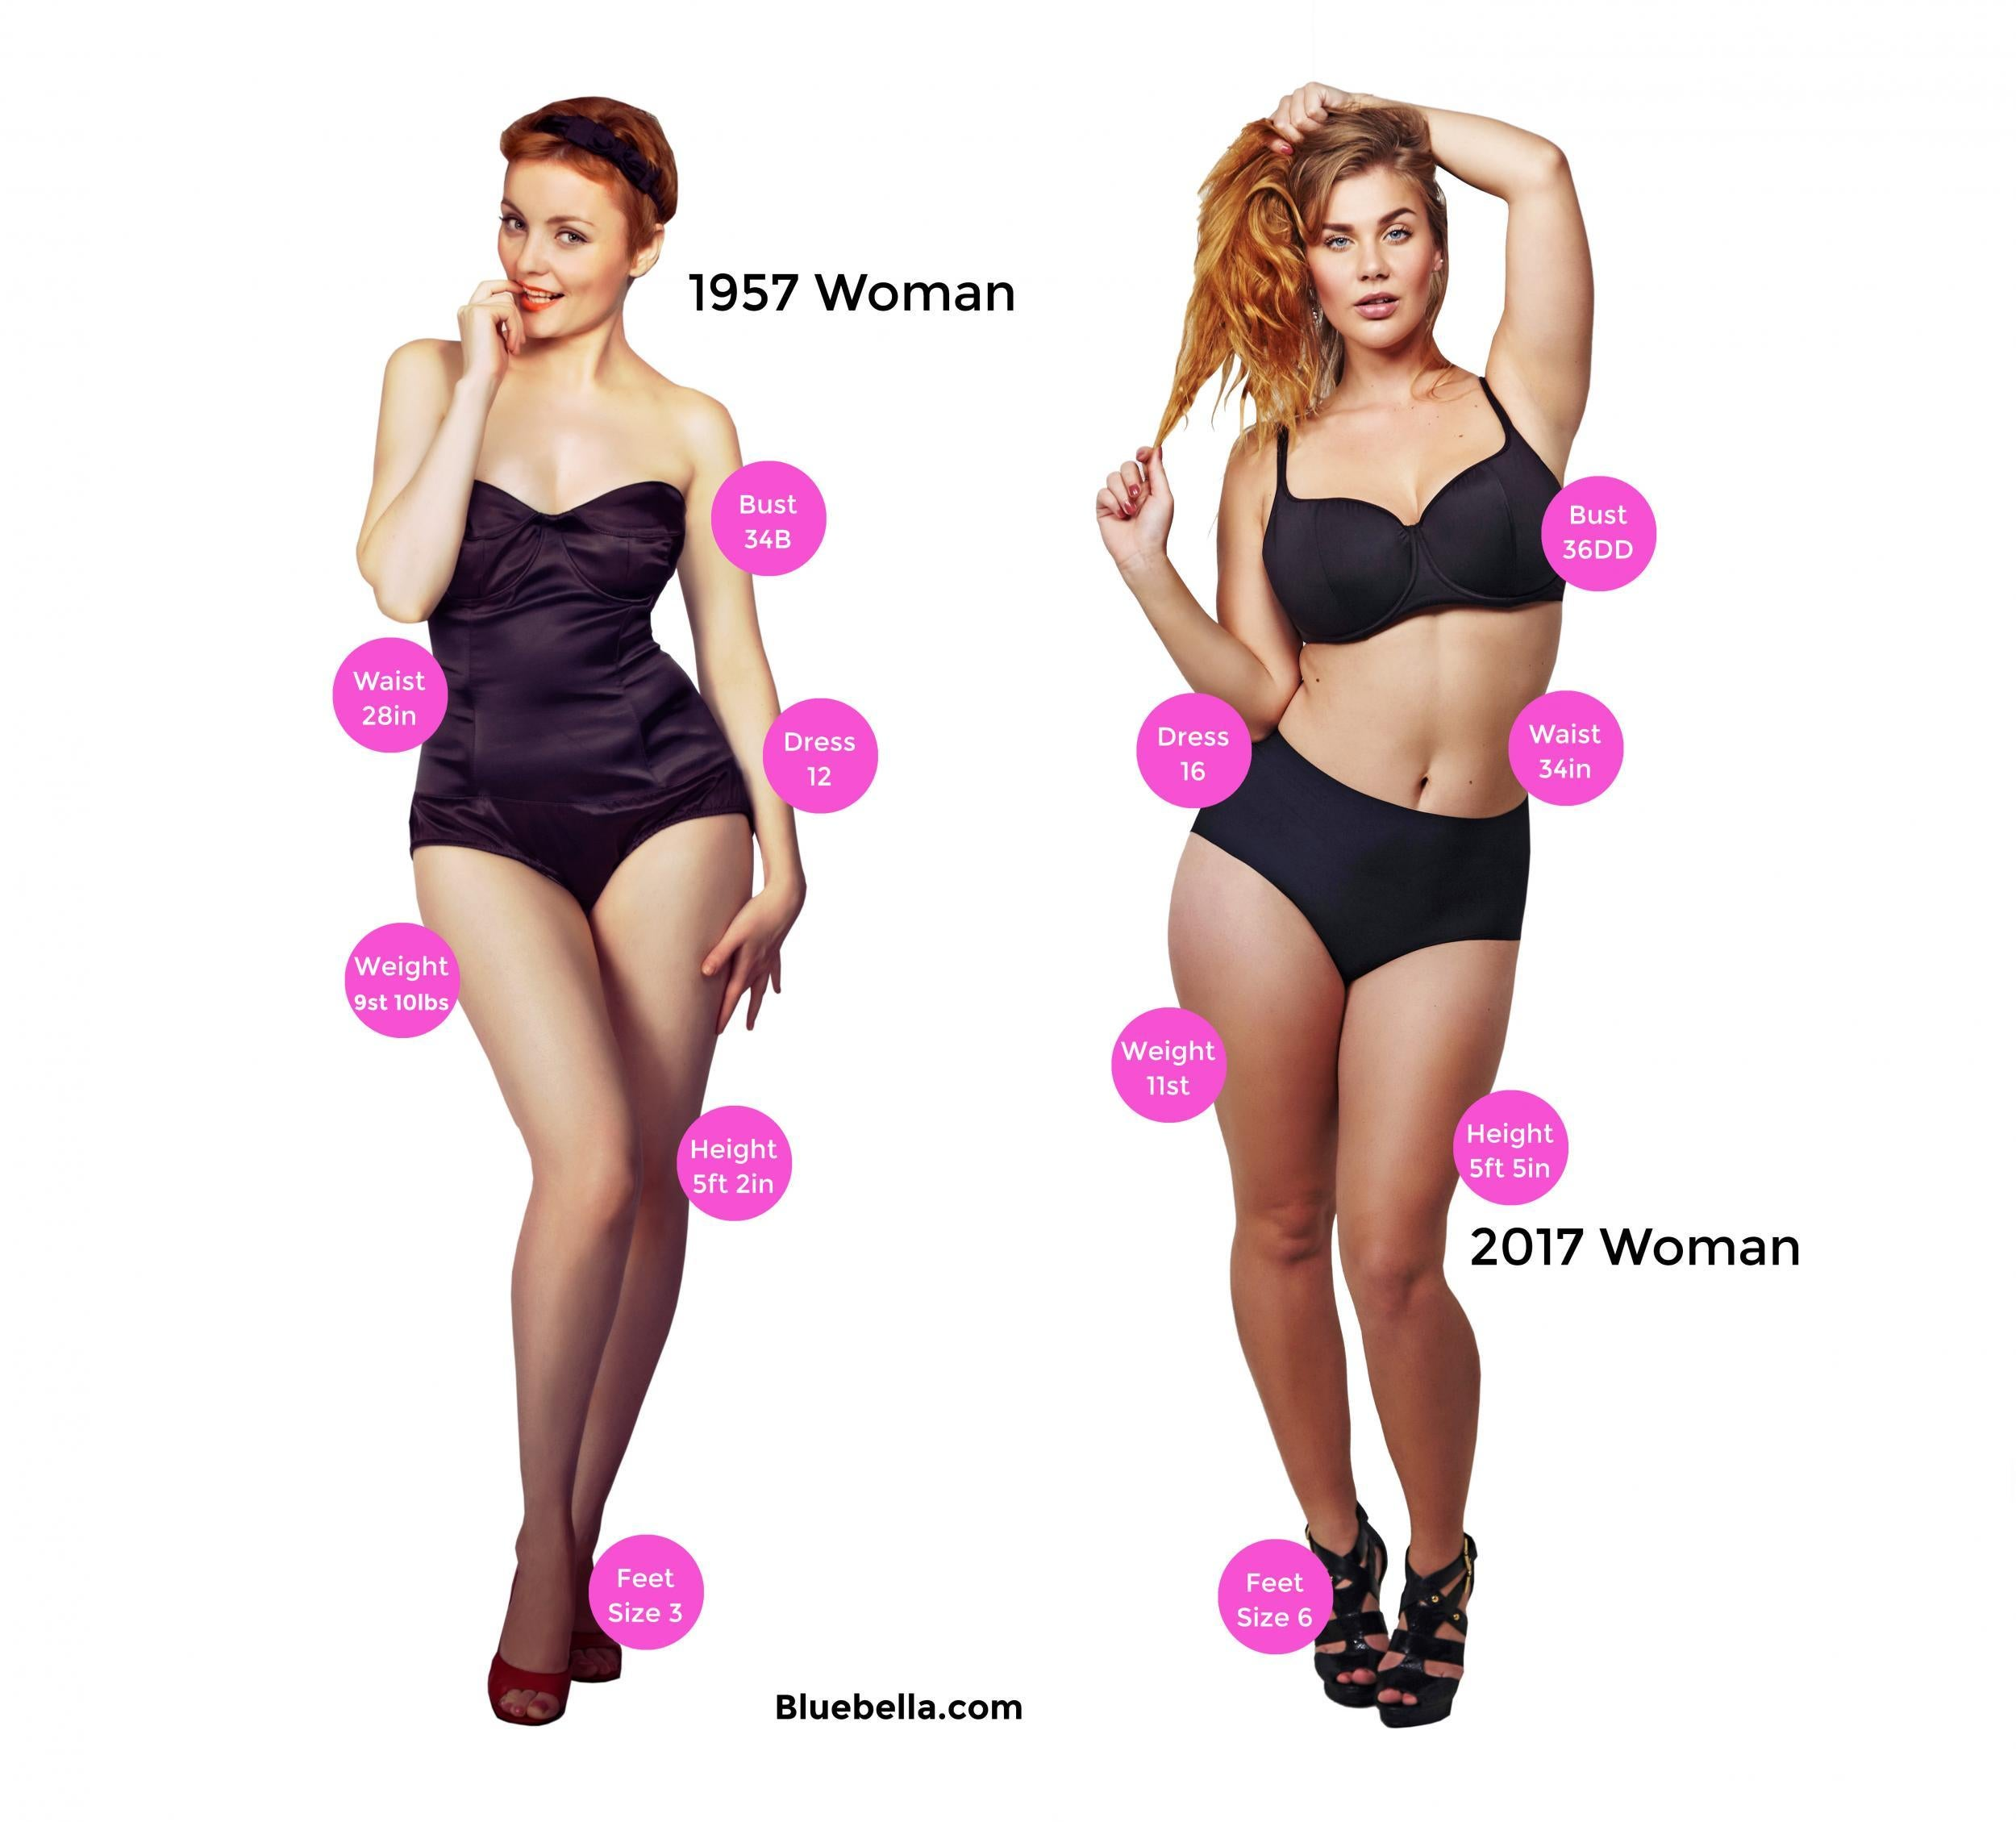 How women\'s bodies have changed since 1957 | The Independent